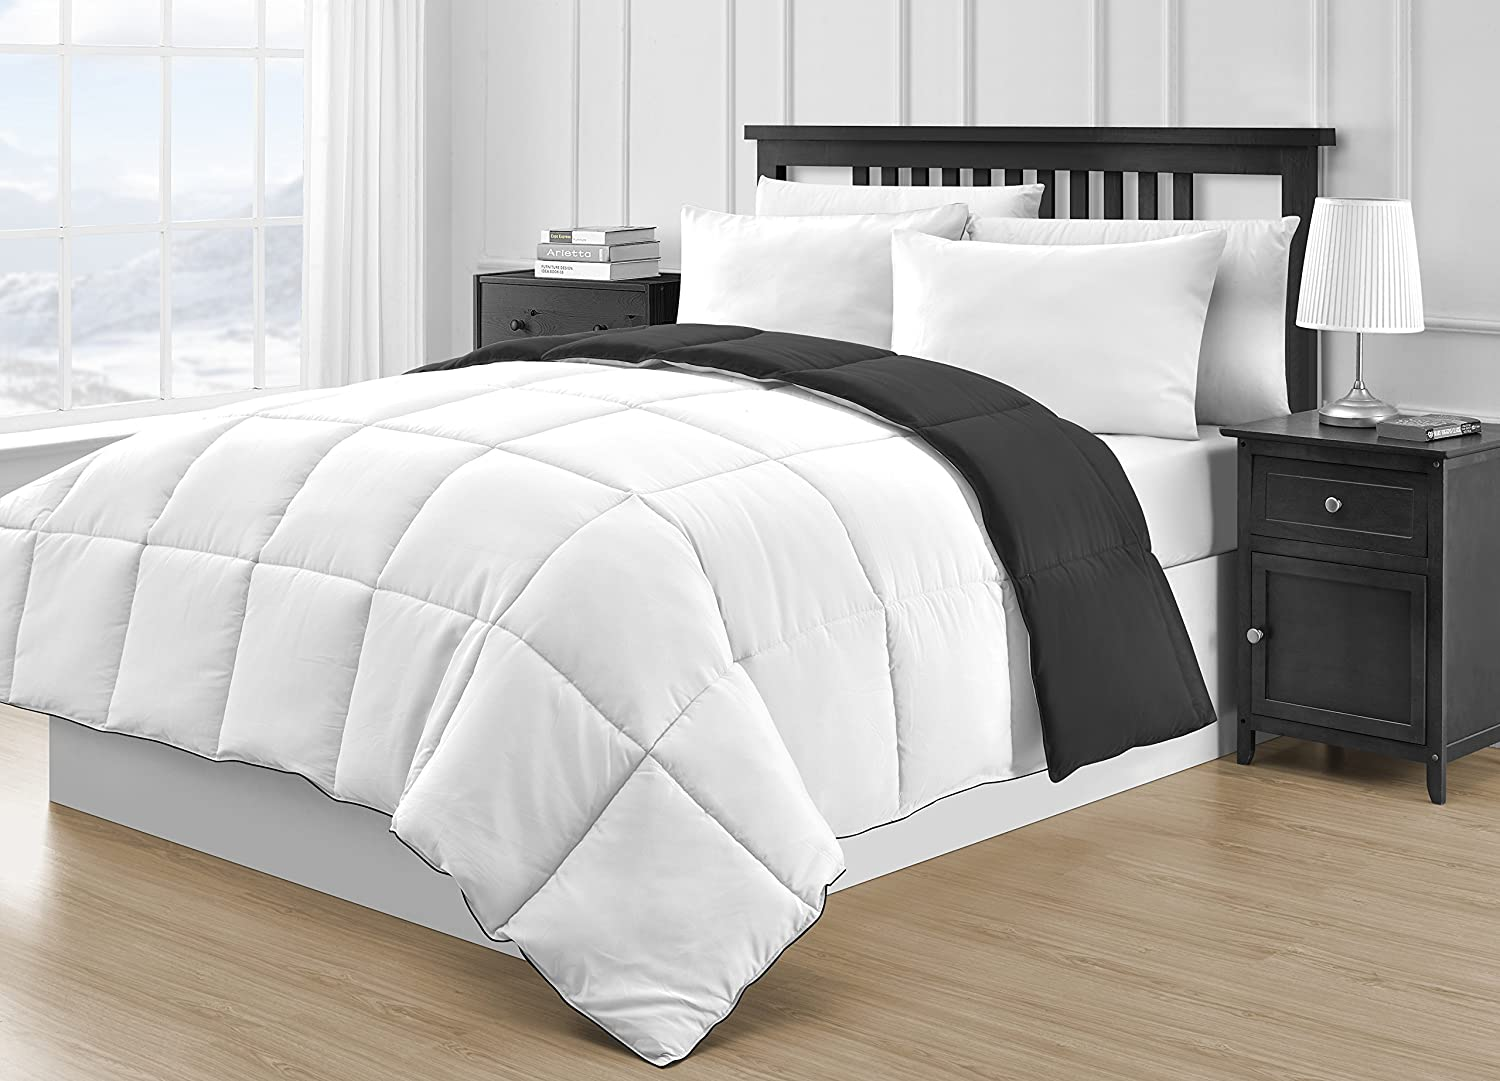 P&R Bedding Reversible Microfiber Black & White 2-Piece Comforter Set